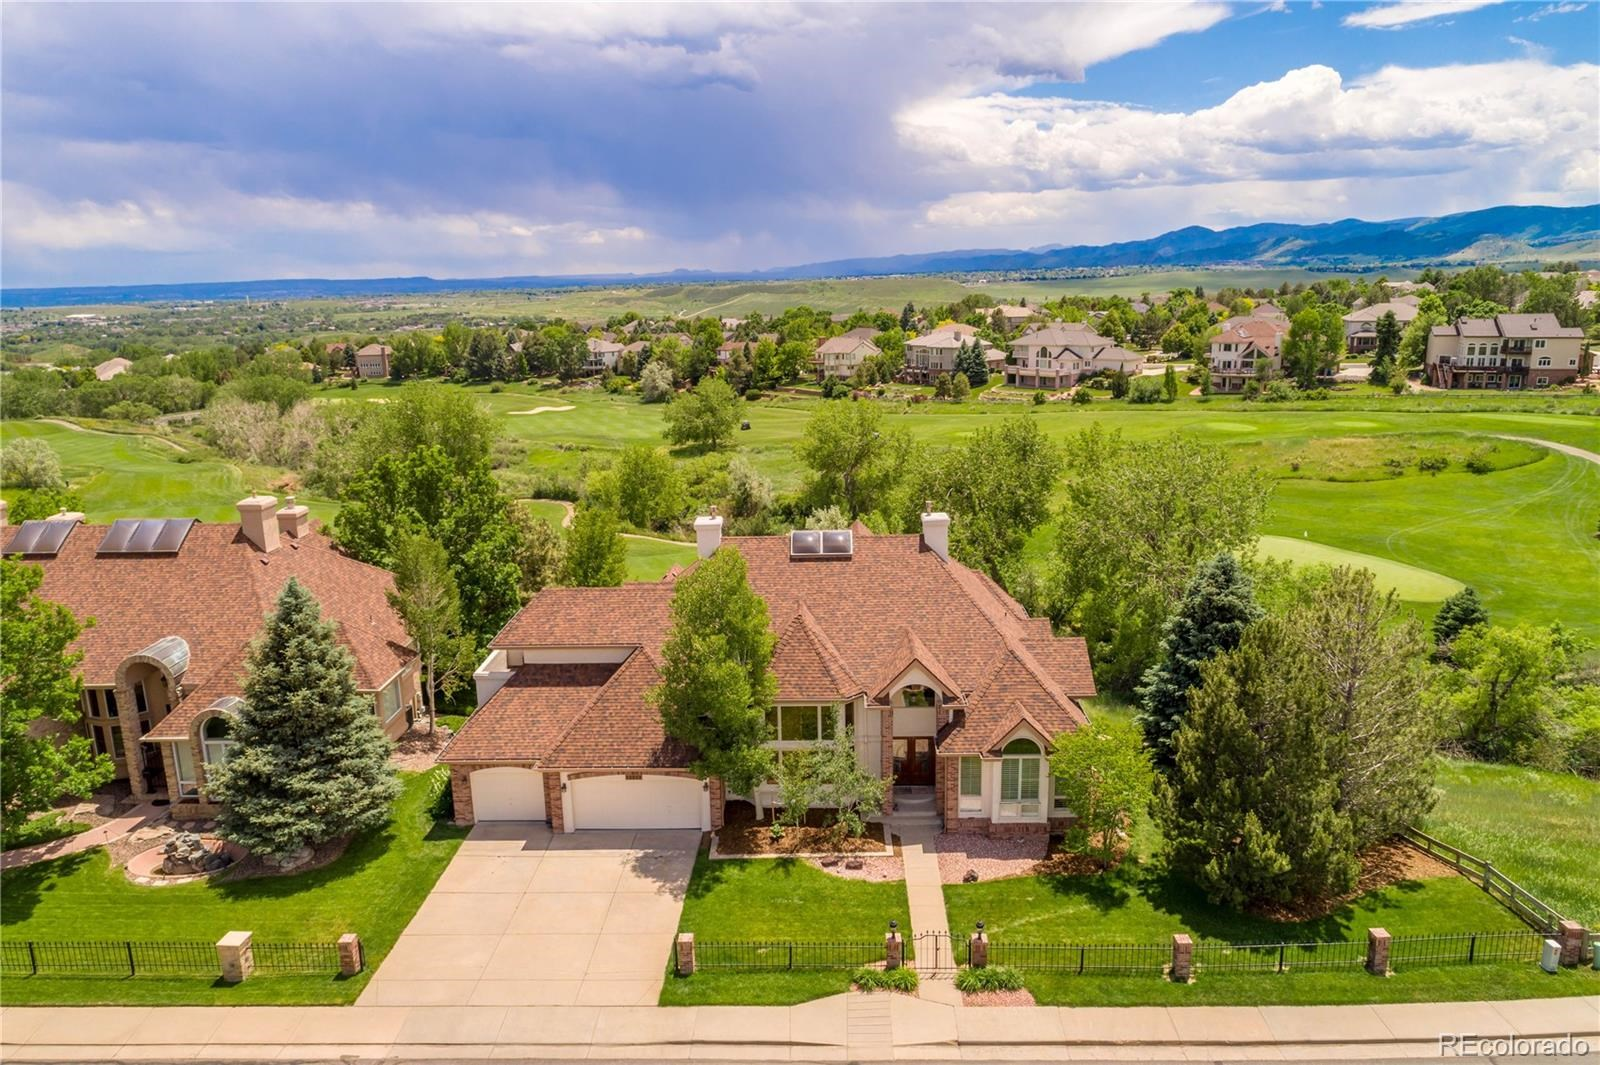 MLS# 2024731 - 1 - 12970 W Auburn Avenue, Lakewood, CO 80228